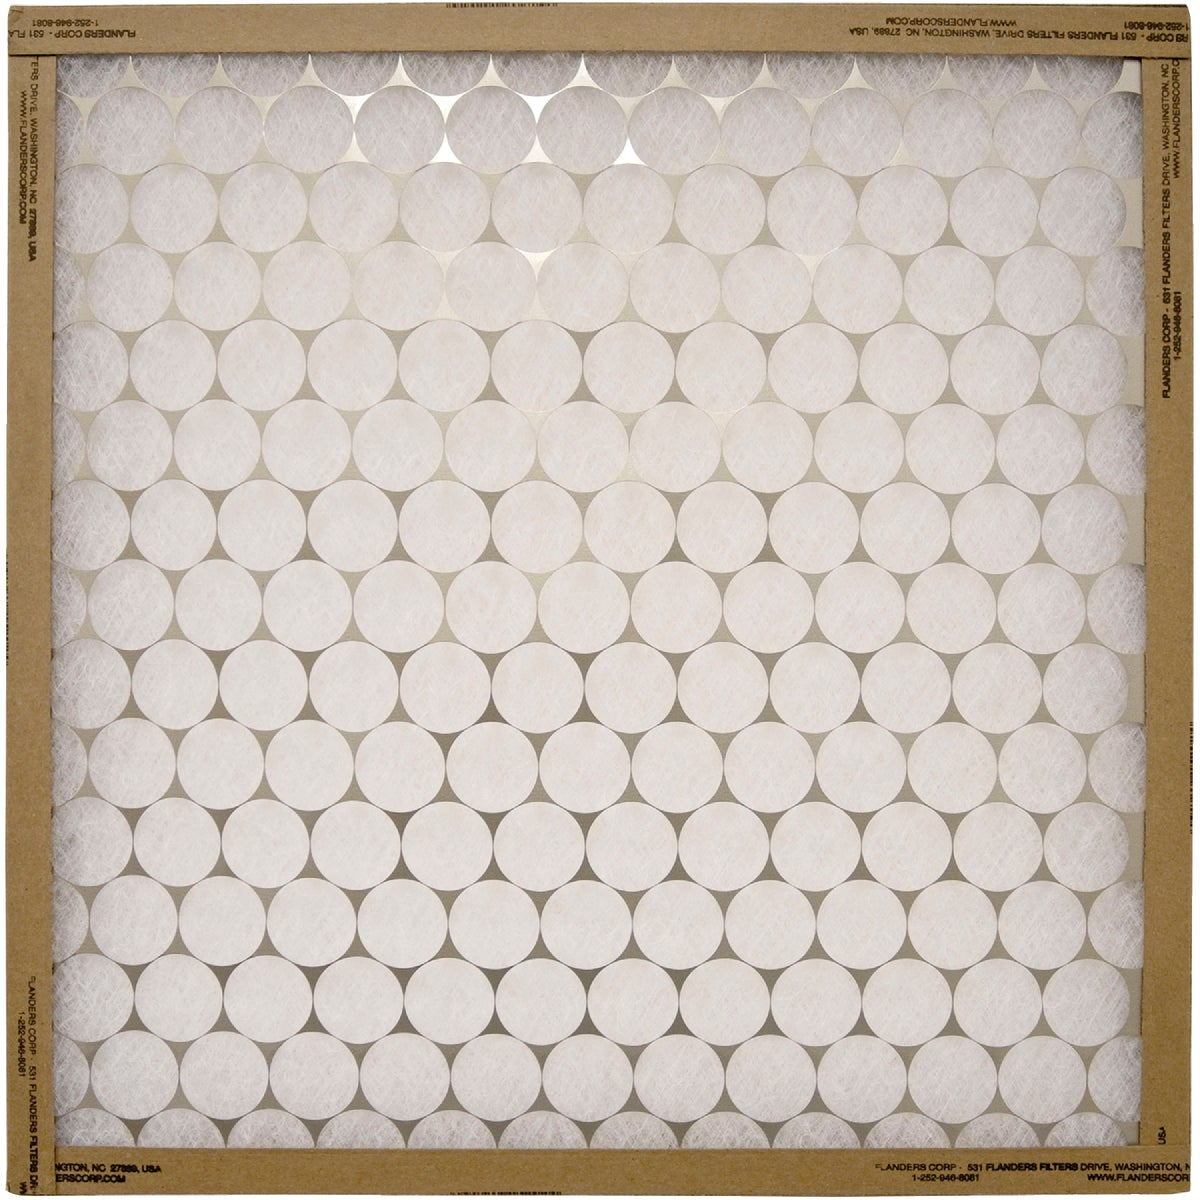 12X30 FURNACE FILTER - 10255.011230 by Flanders Corp